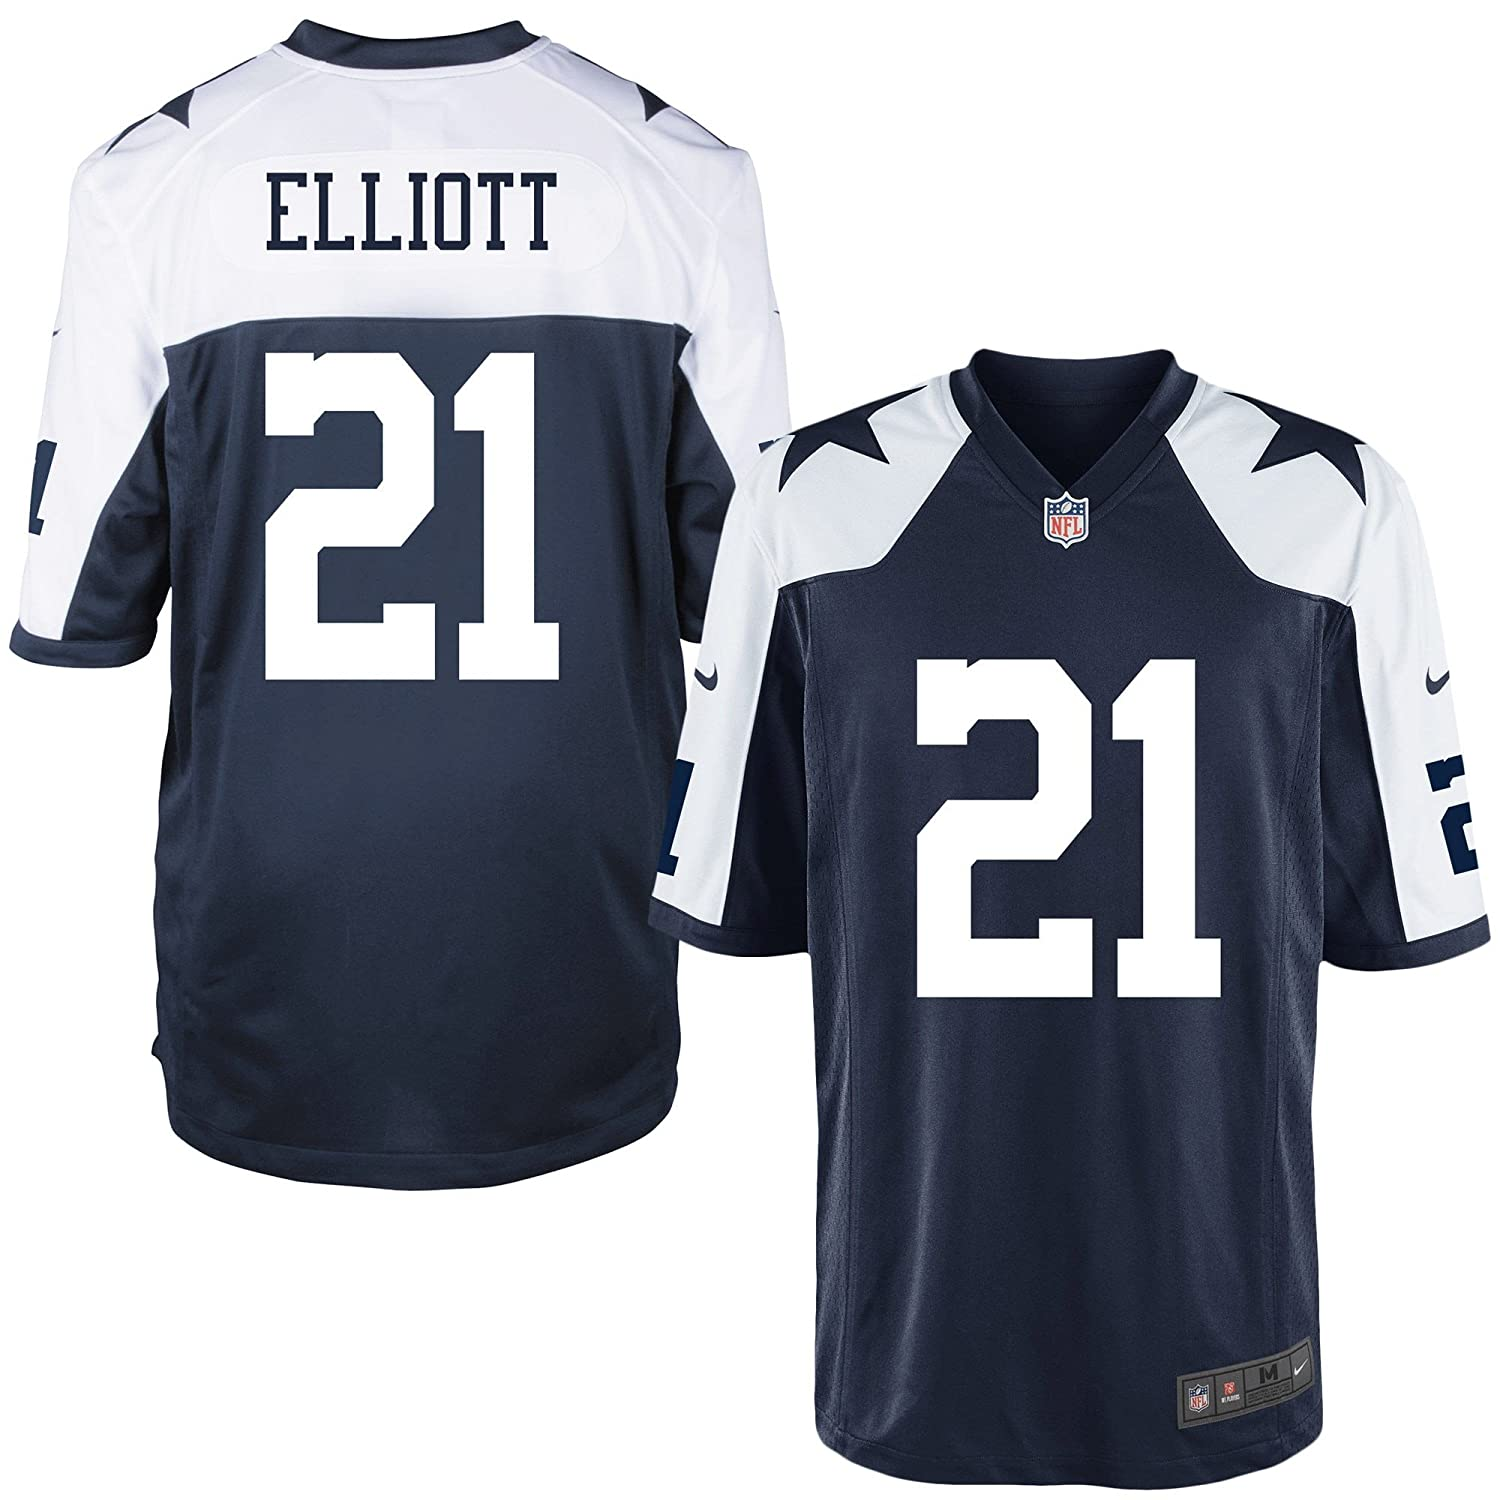 official photos ec0d9 5aaa3 Dallas Cowboys Ezekiel Elliott Nike Game Replica Throwback Jersey